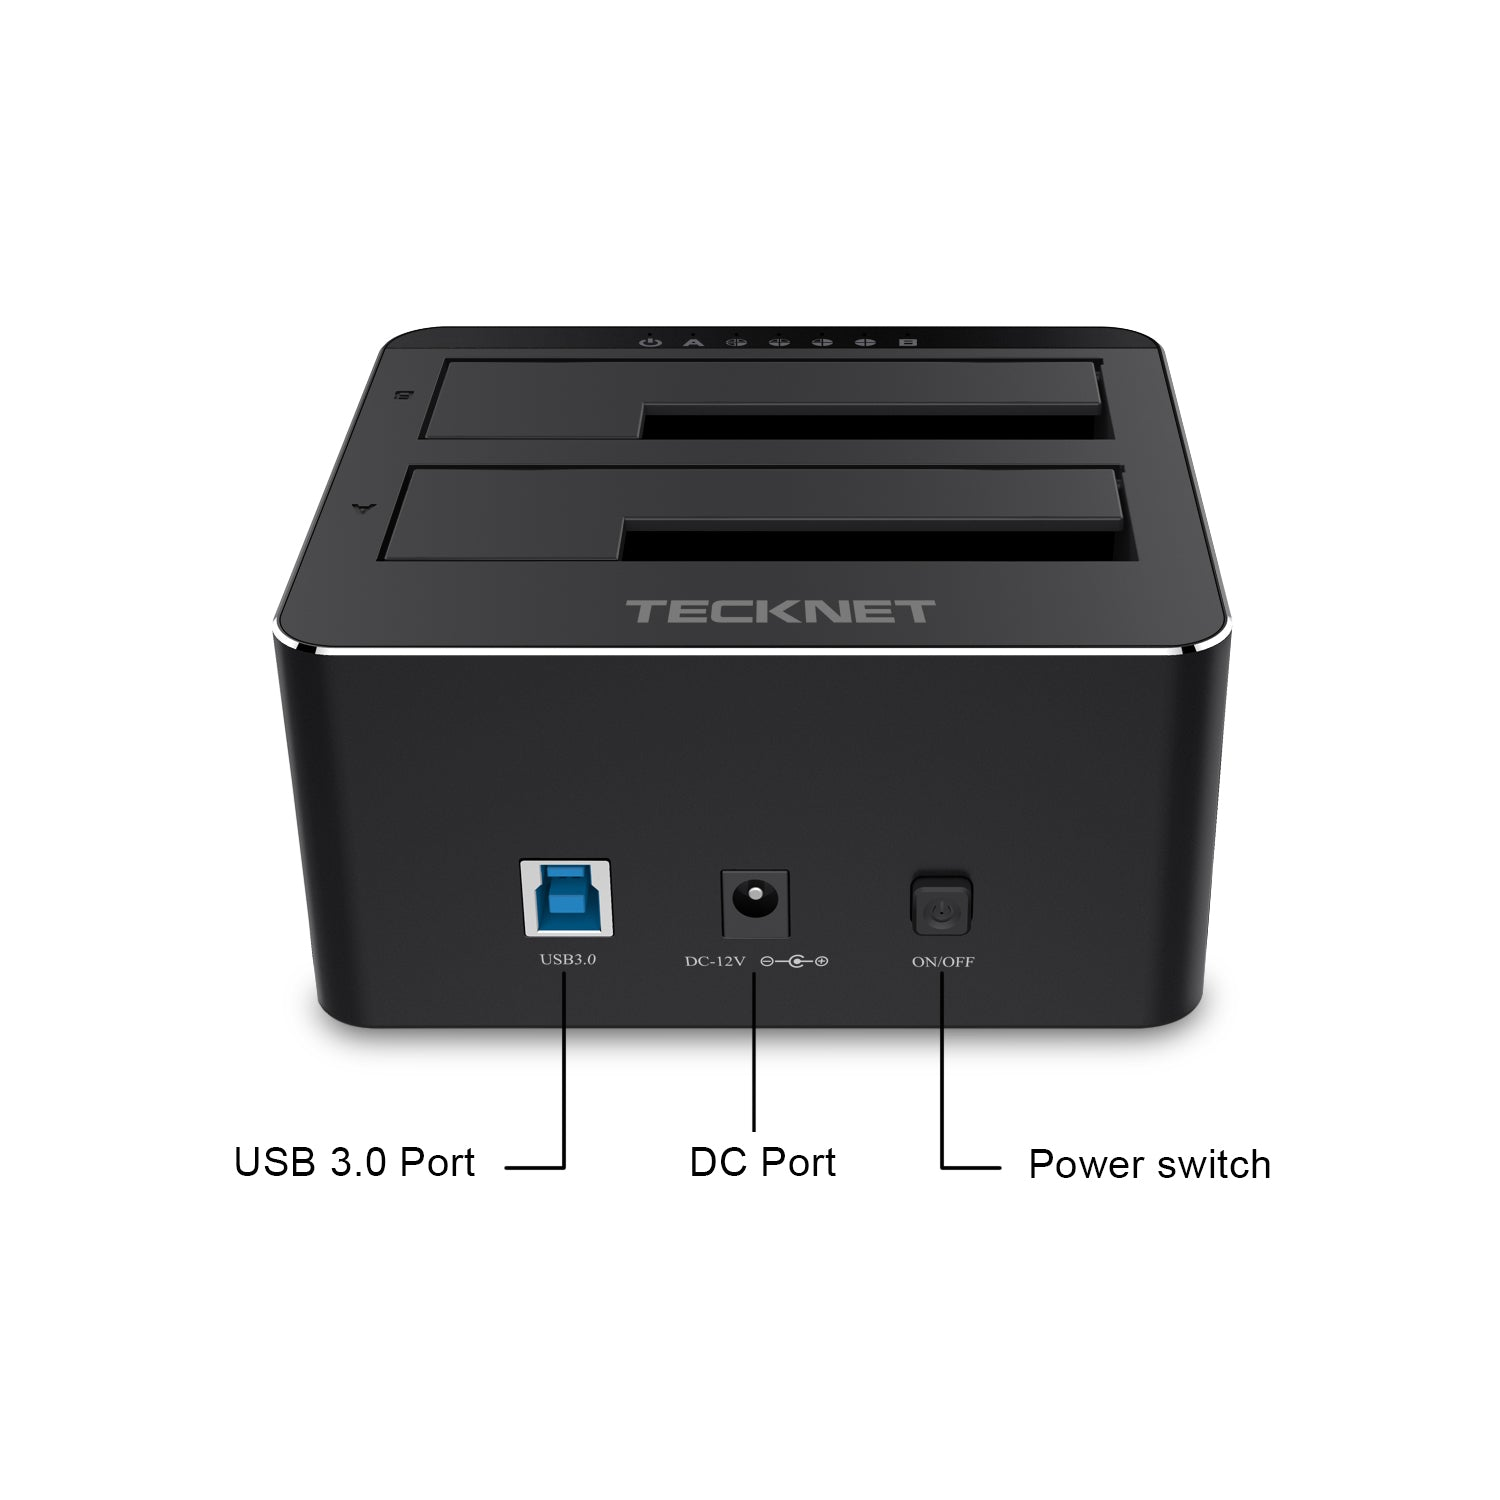 TECKNET Docking station USB 3.0 Super Speed for Hard Drives